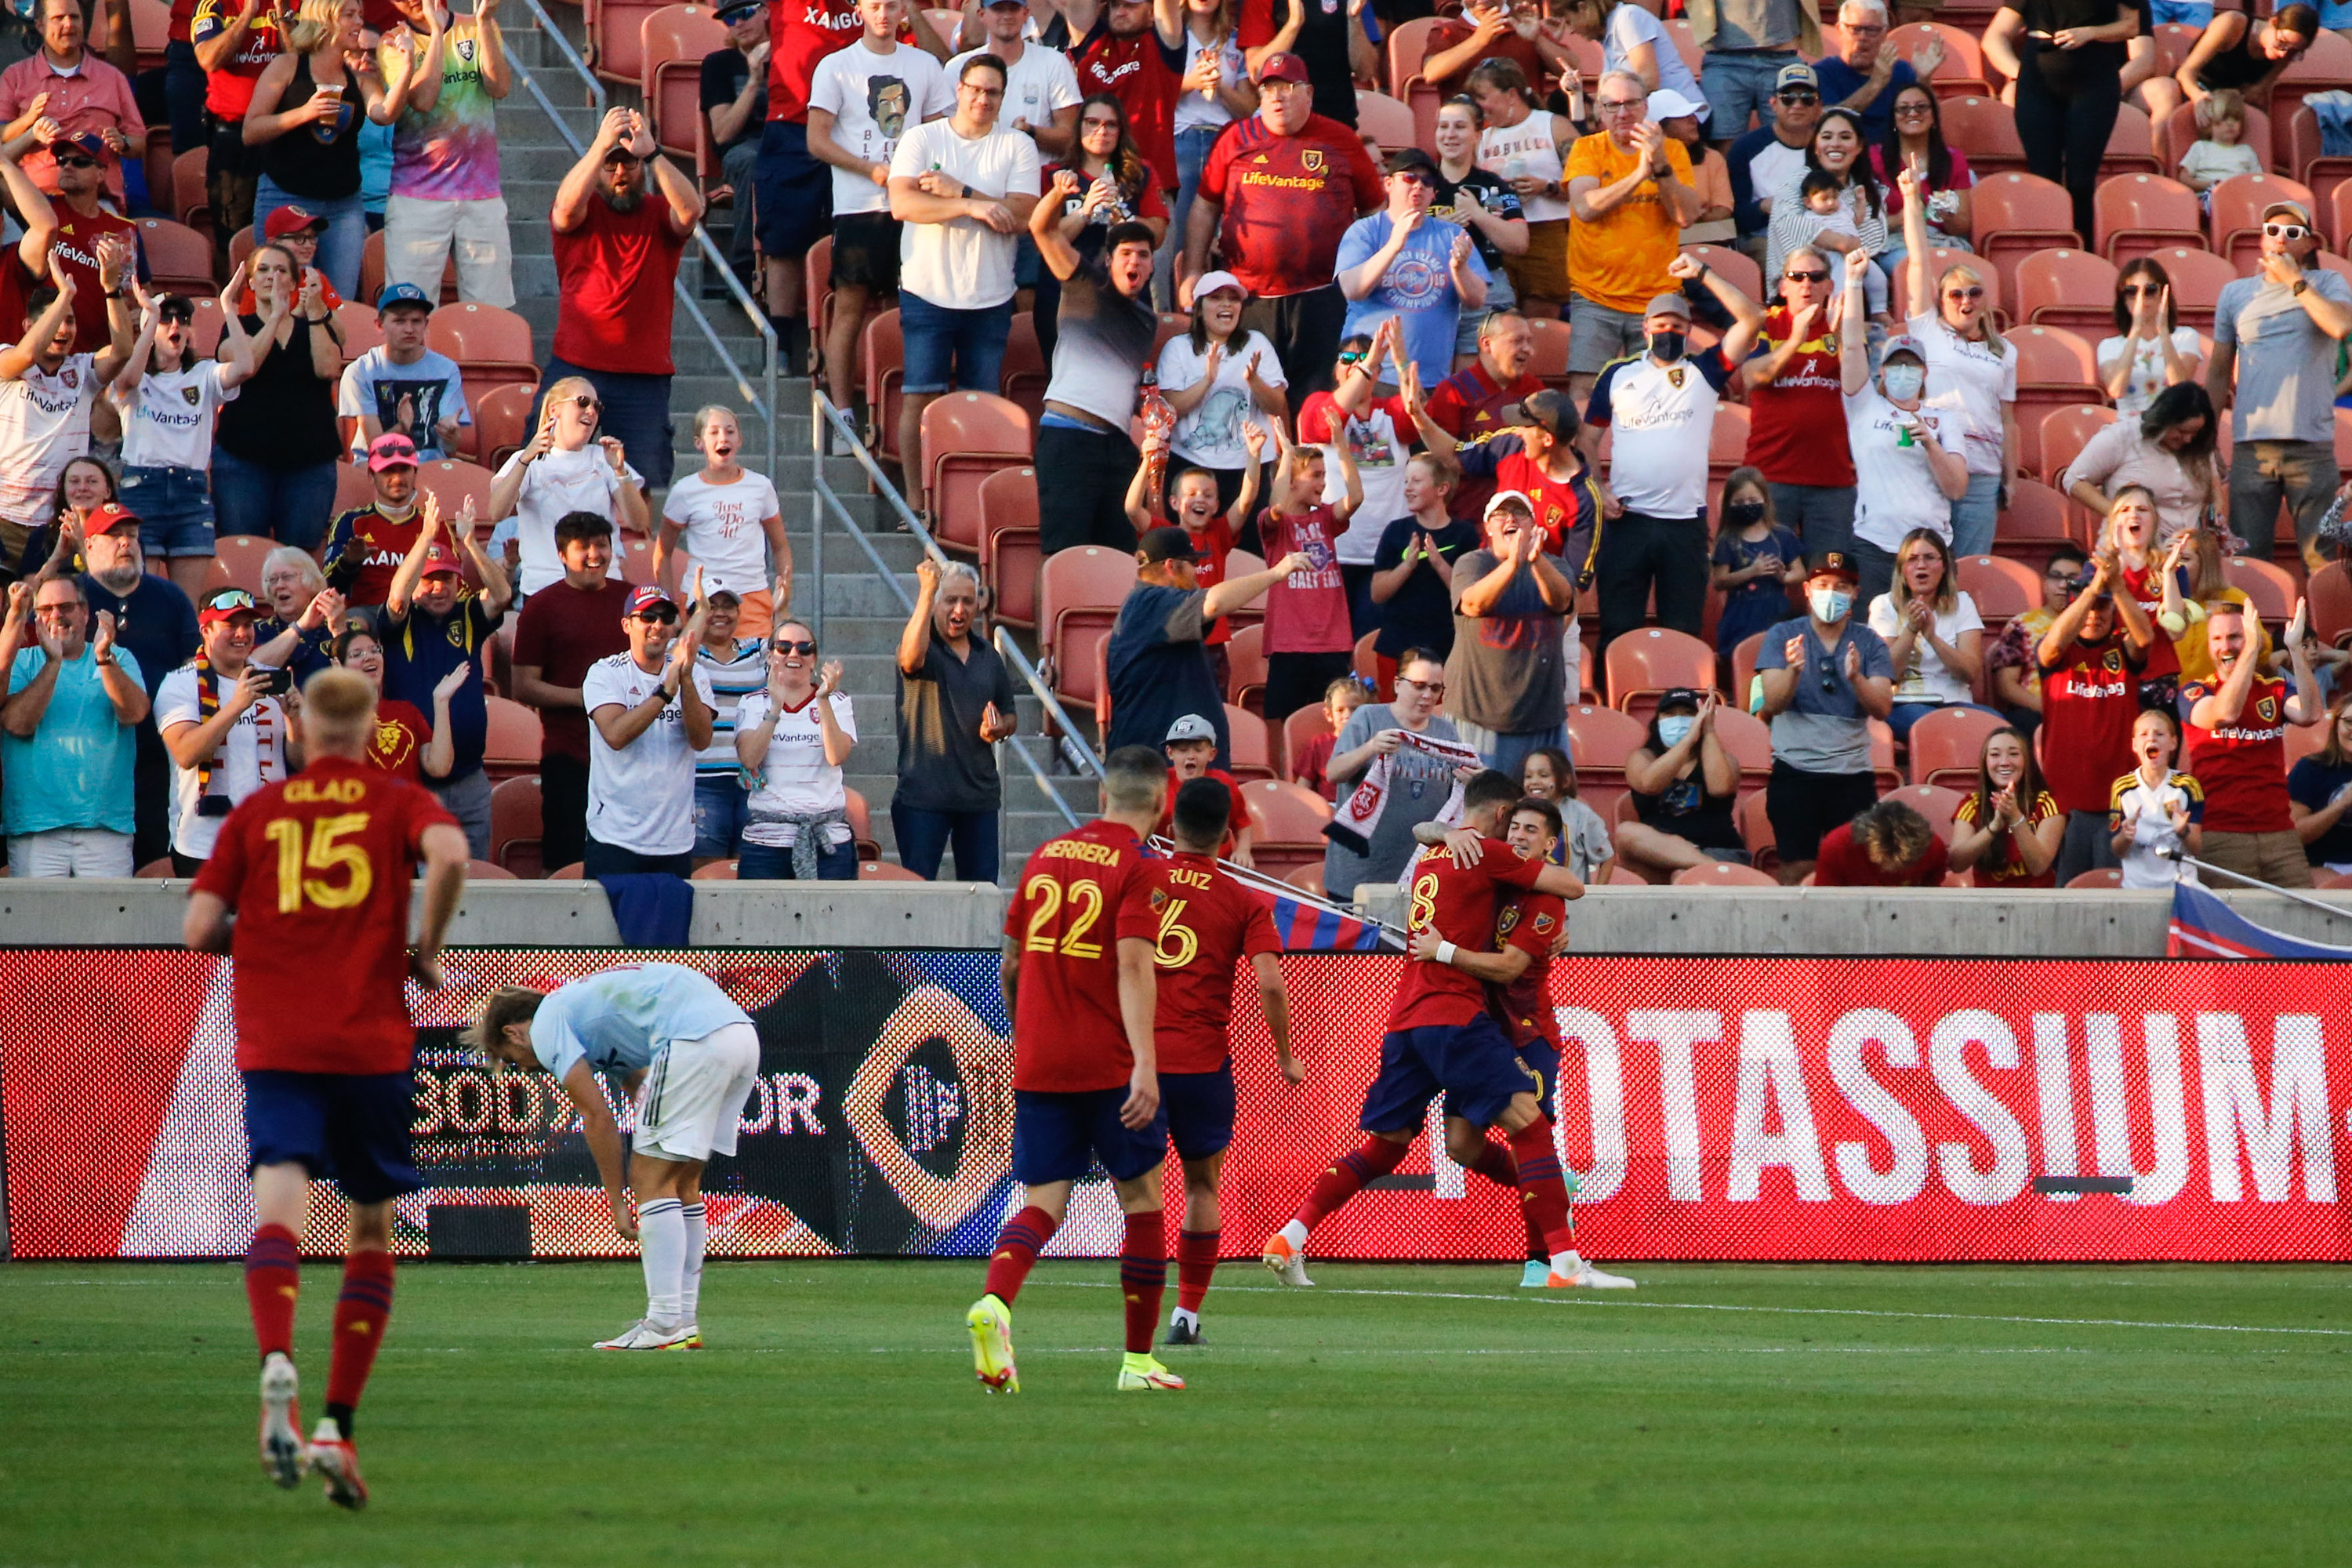 Real Salt Lake players celebrate after scoring their second goal during the second half of an MLS soccer match against FC Dallasin Sandy on Saturday, Sept. 4, 2021. Real Salt Lake won 3-2.